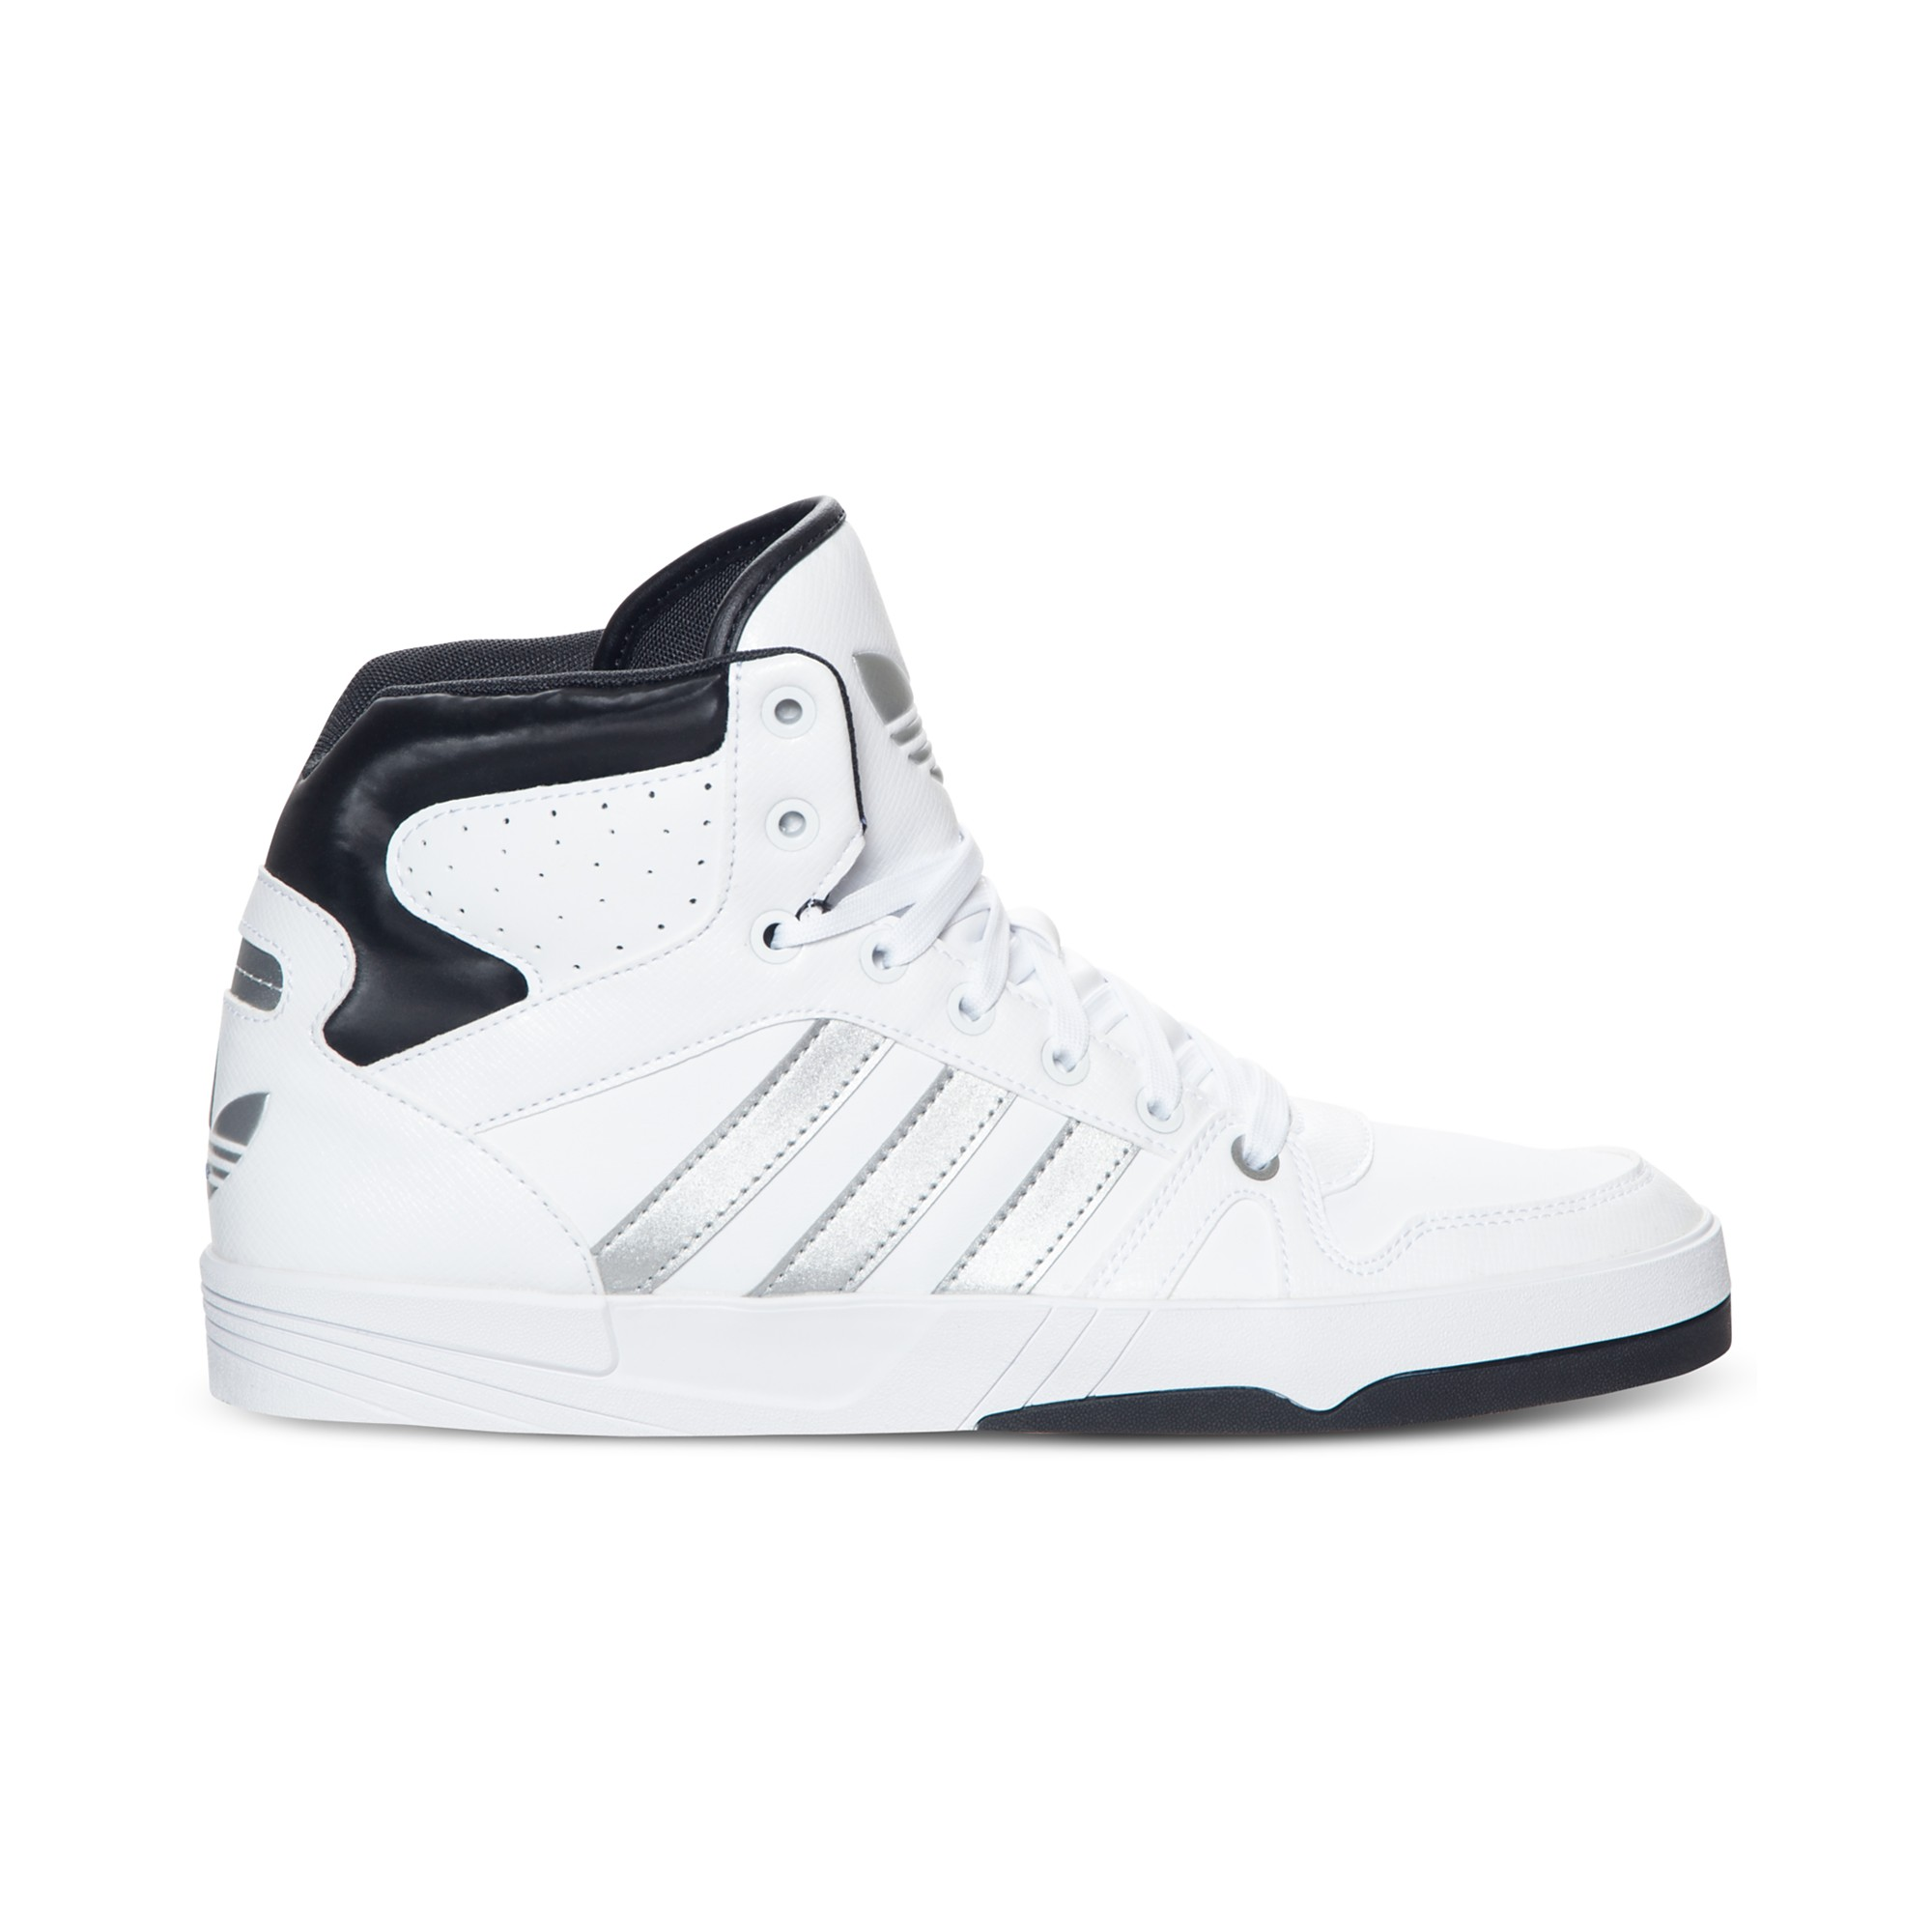 Adidas Court Pro Casual Shoes